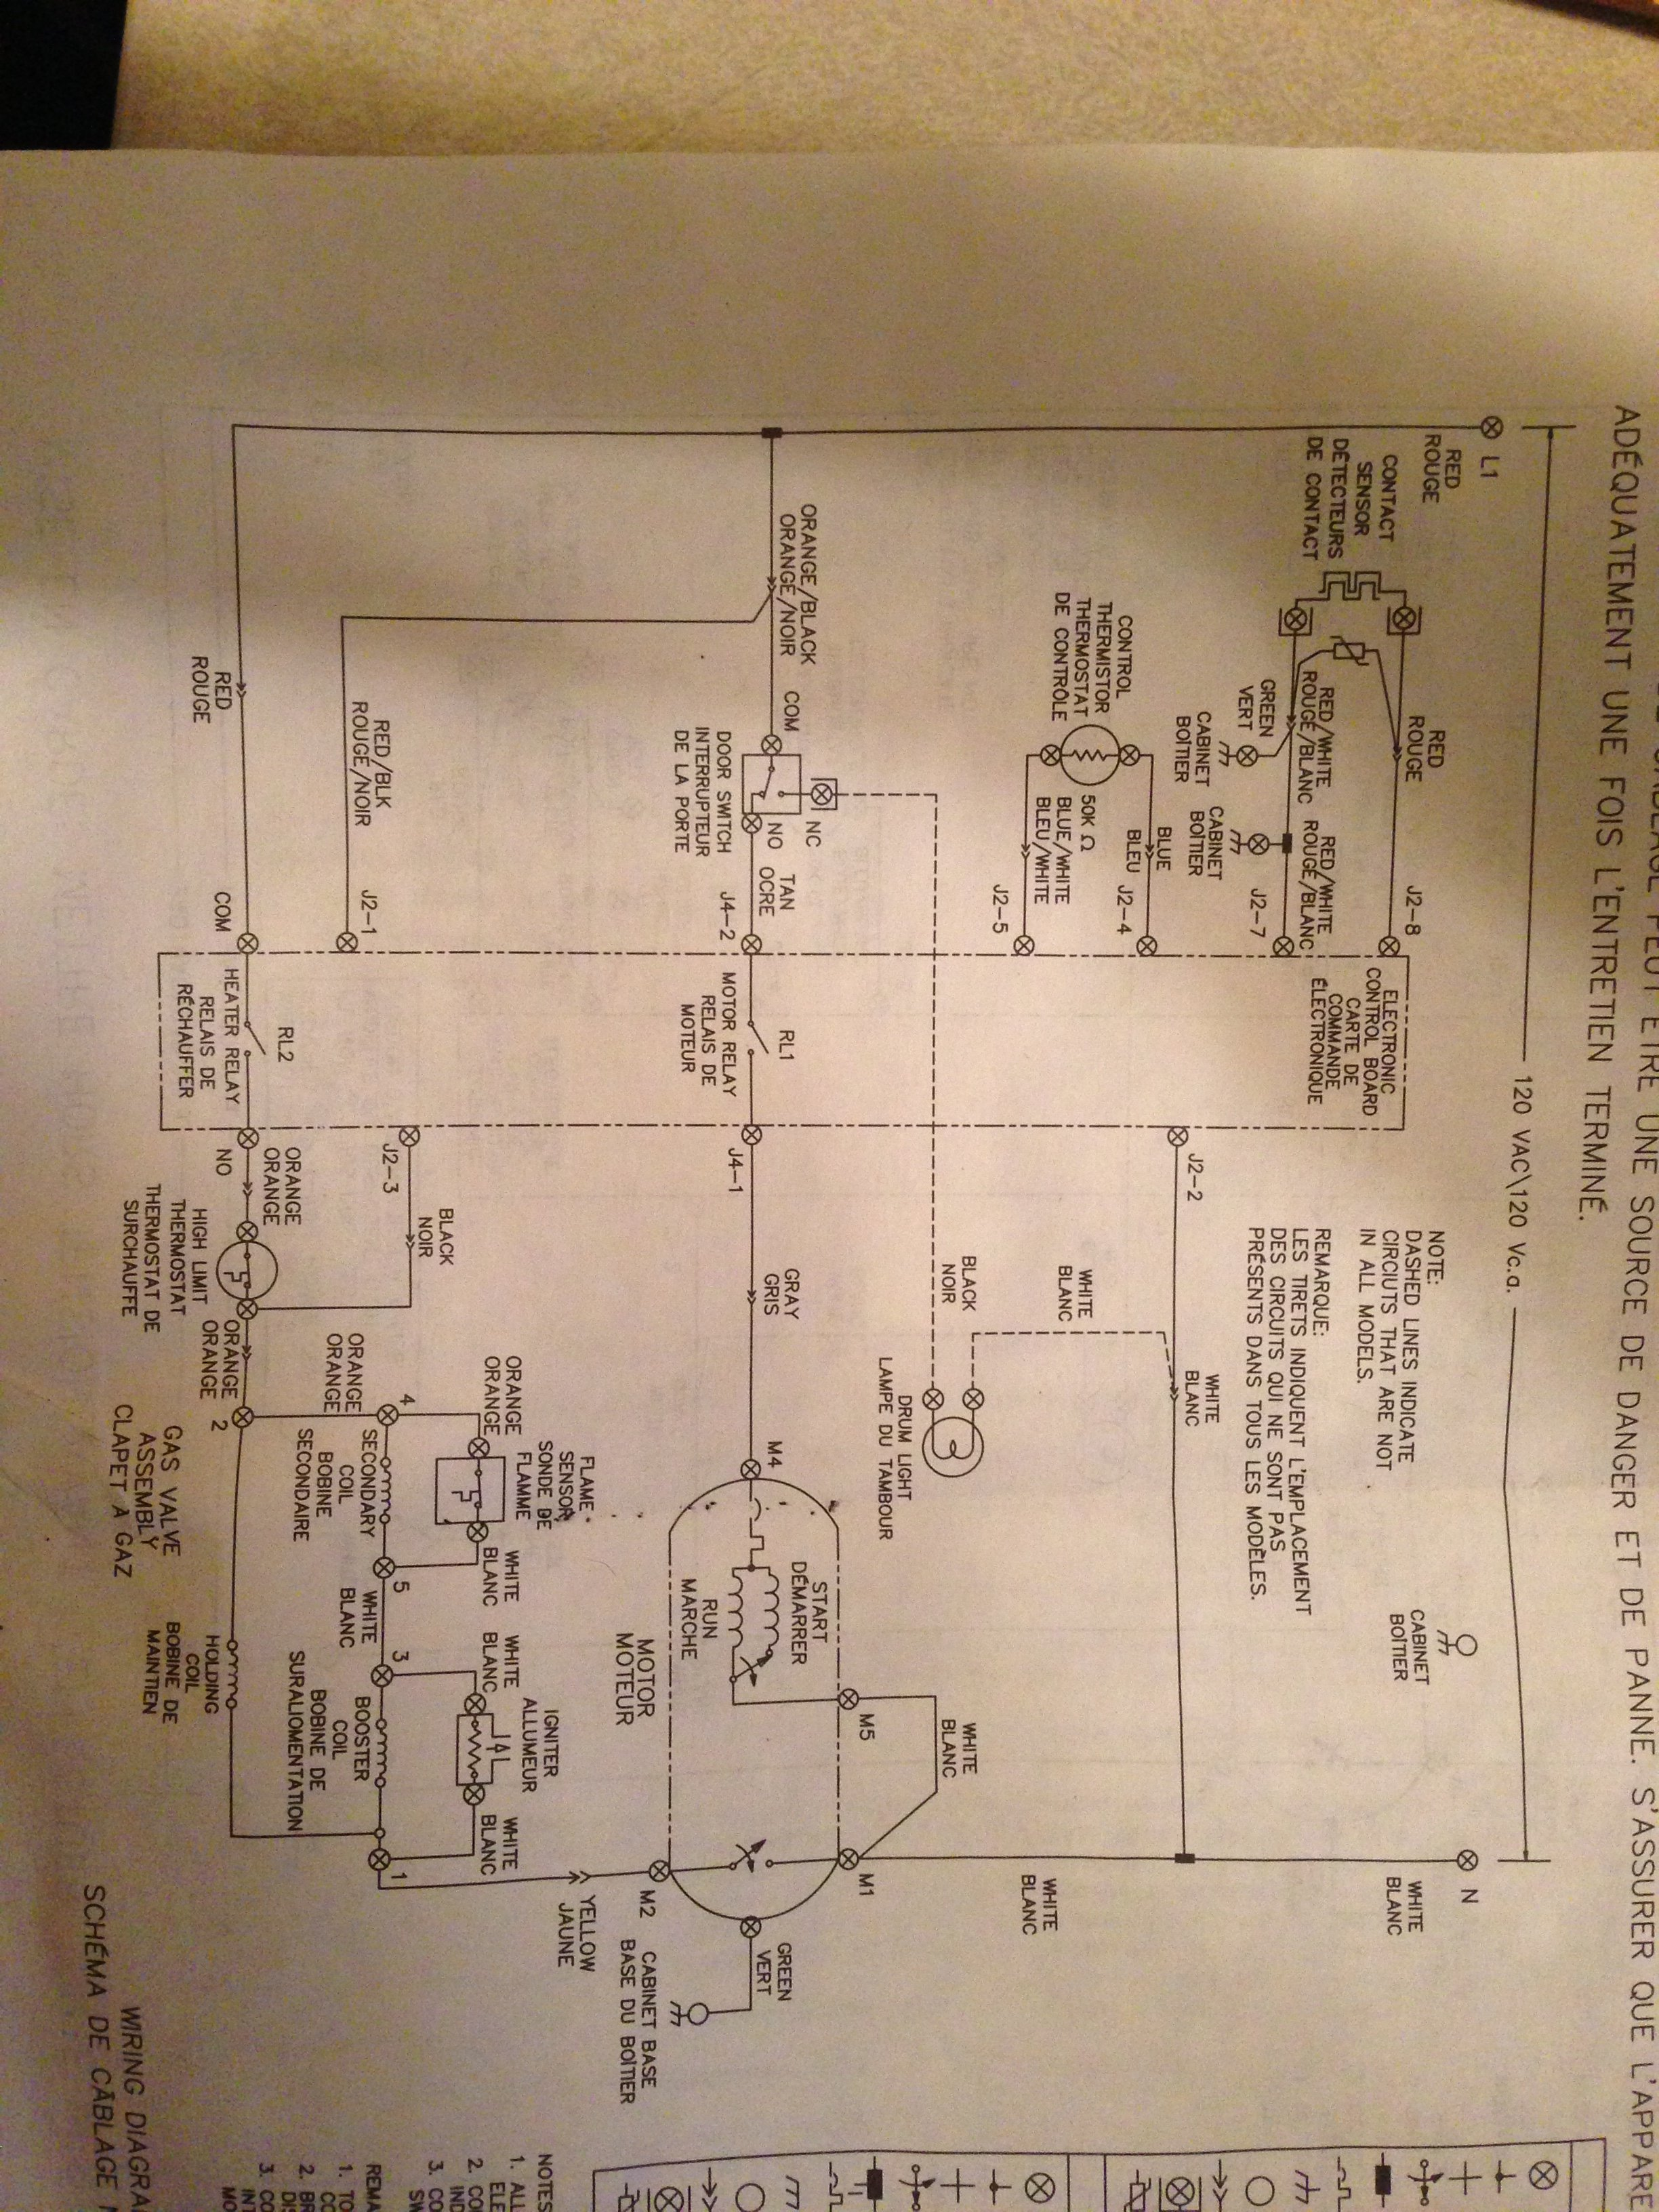 Frigidaire Washer Wiring Diagrams | Wiring Liry on